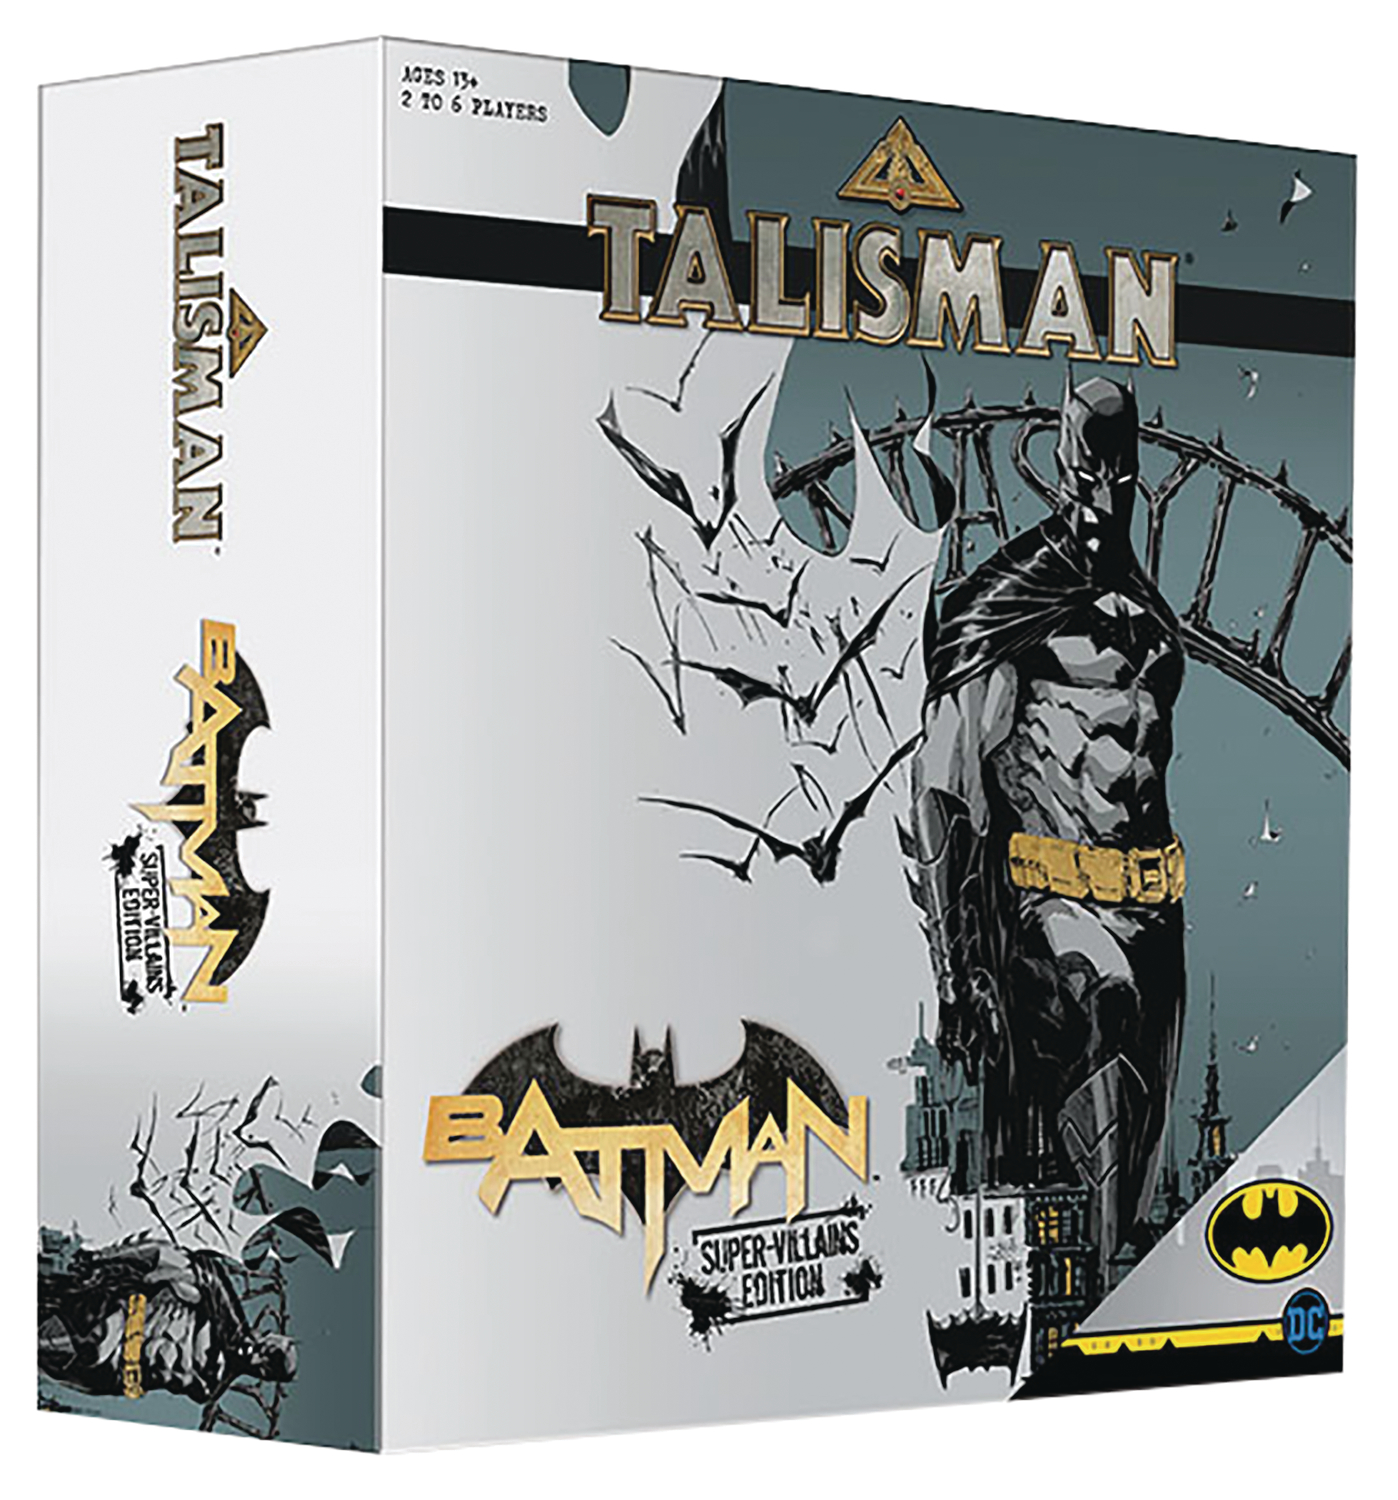 BATMAN TALISMAN BOARD GAME